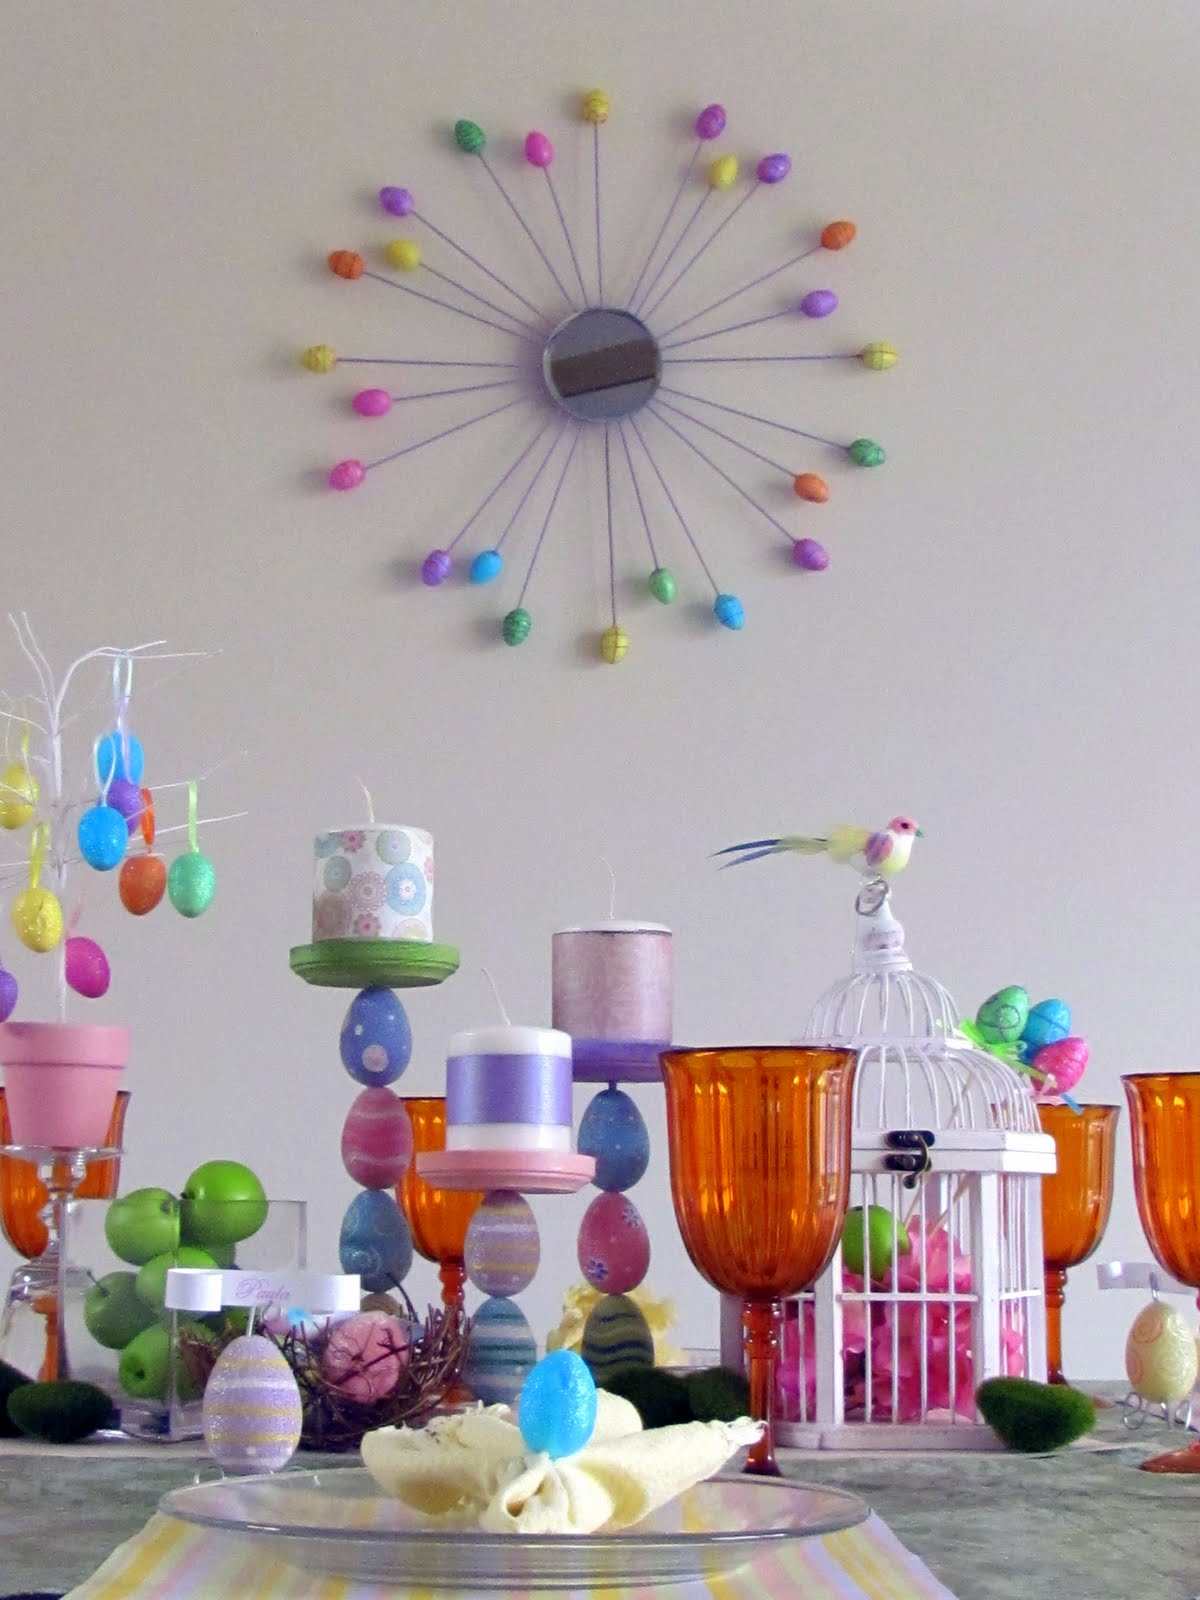 Easter Candle Holder Guest Post By Jcs Loft The Csi